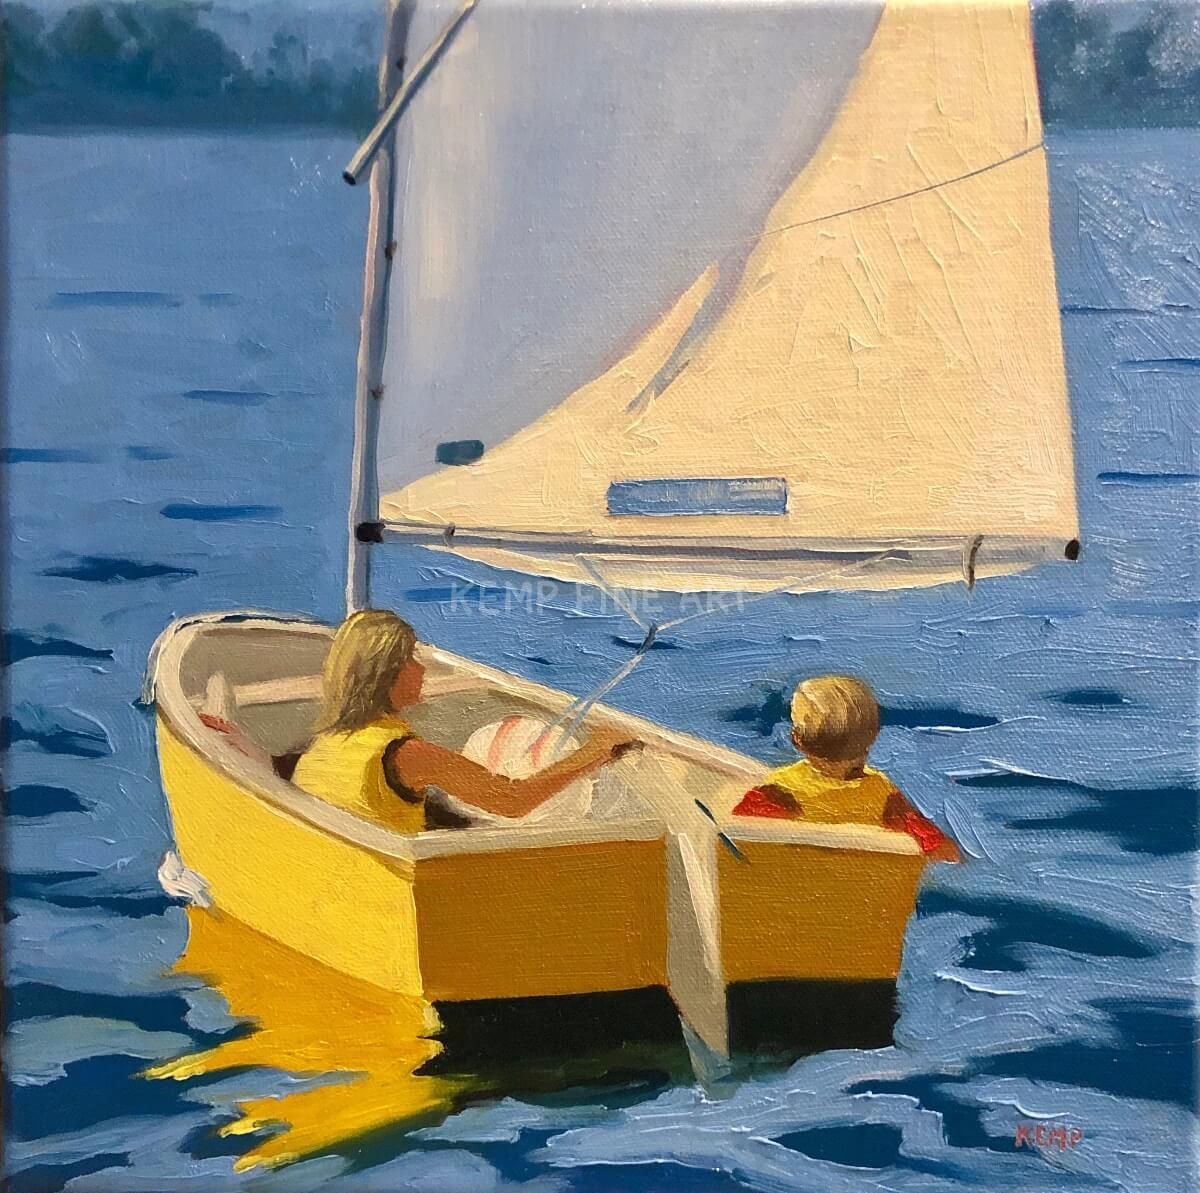 Yellow Dinghy | Oil on Canvas - by Jim Kemp